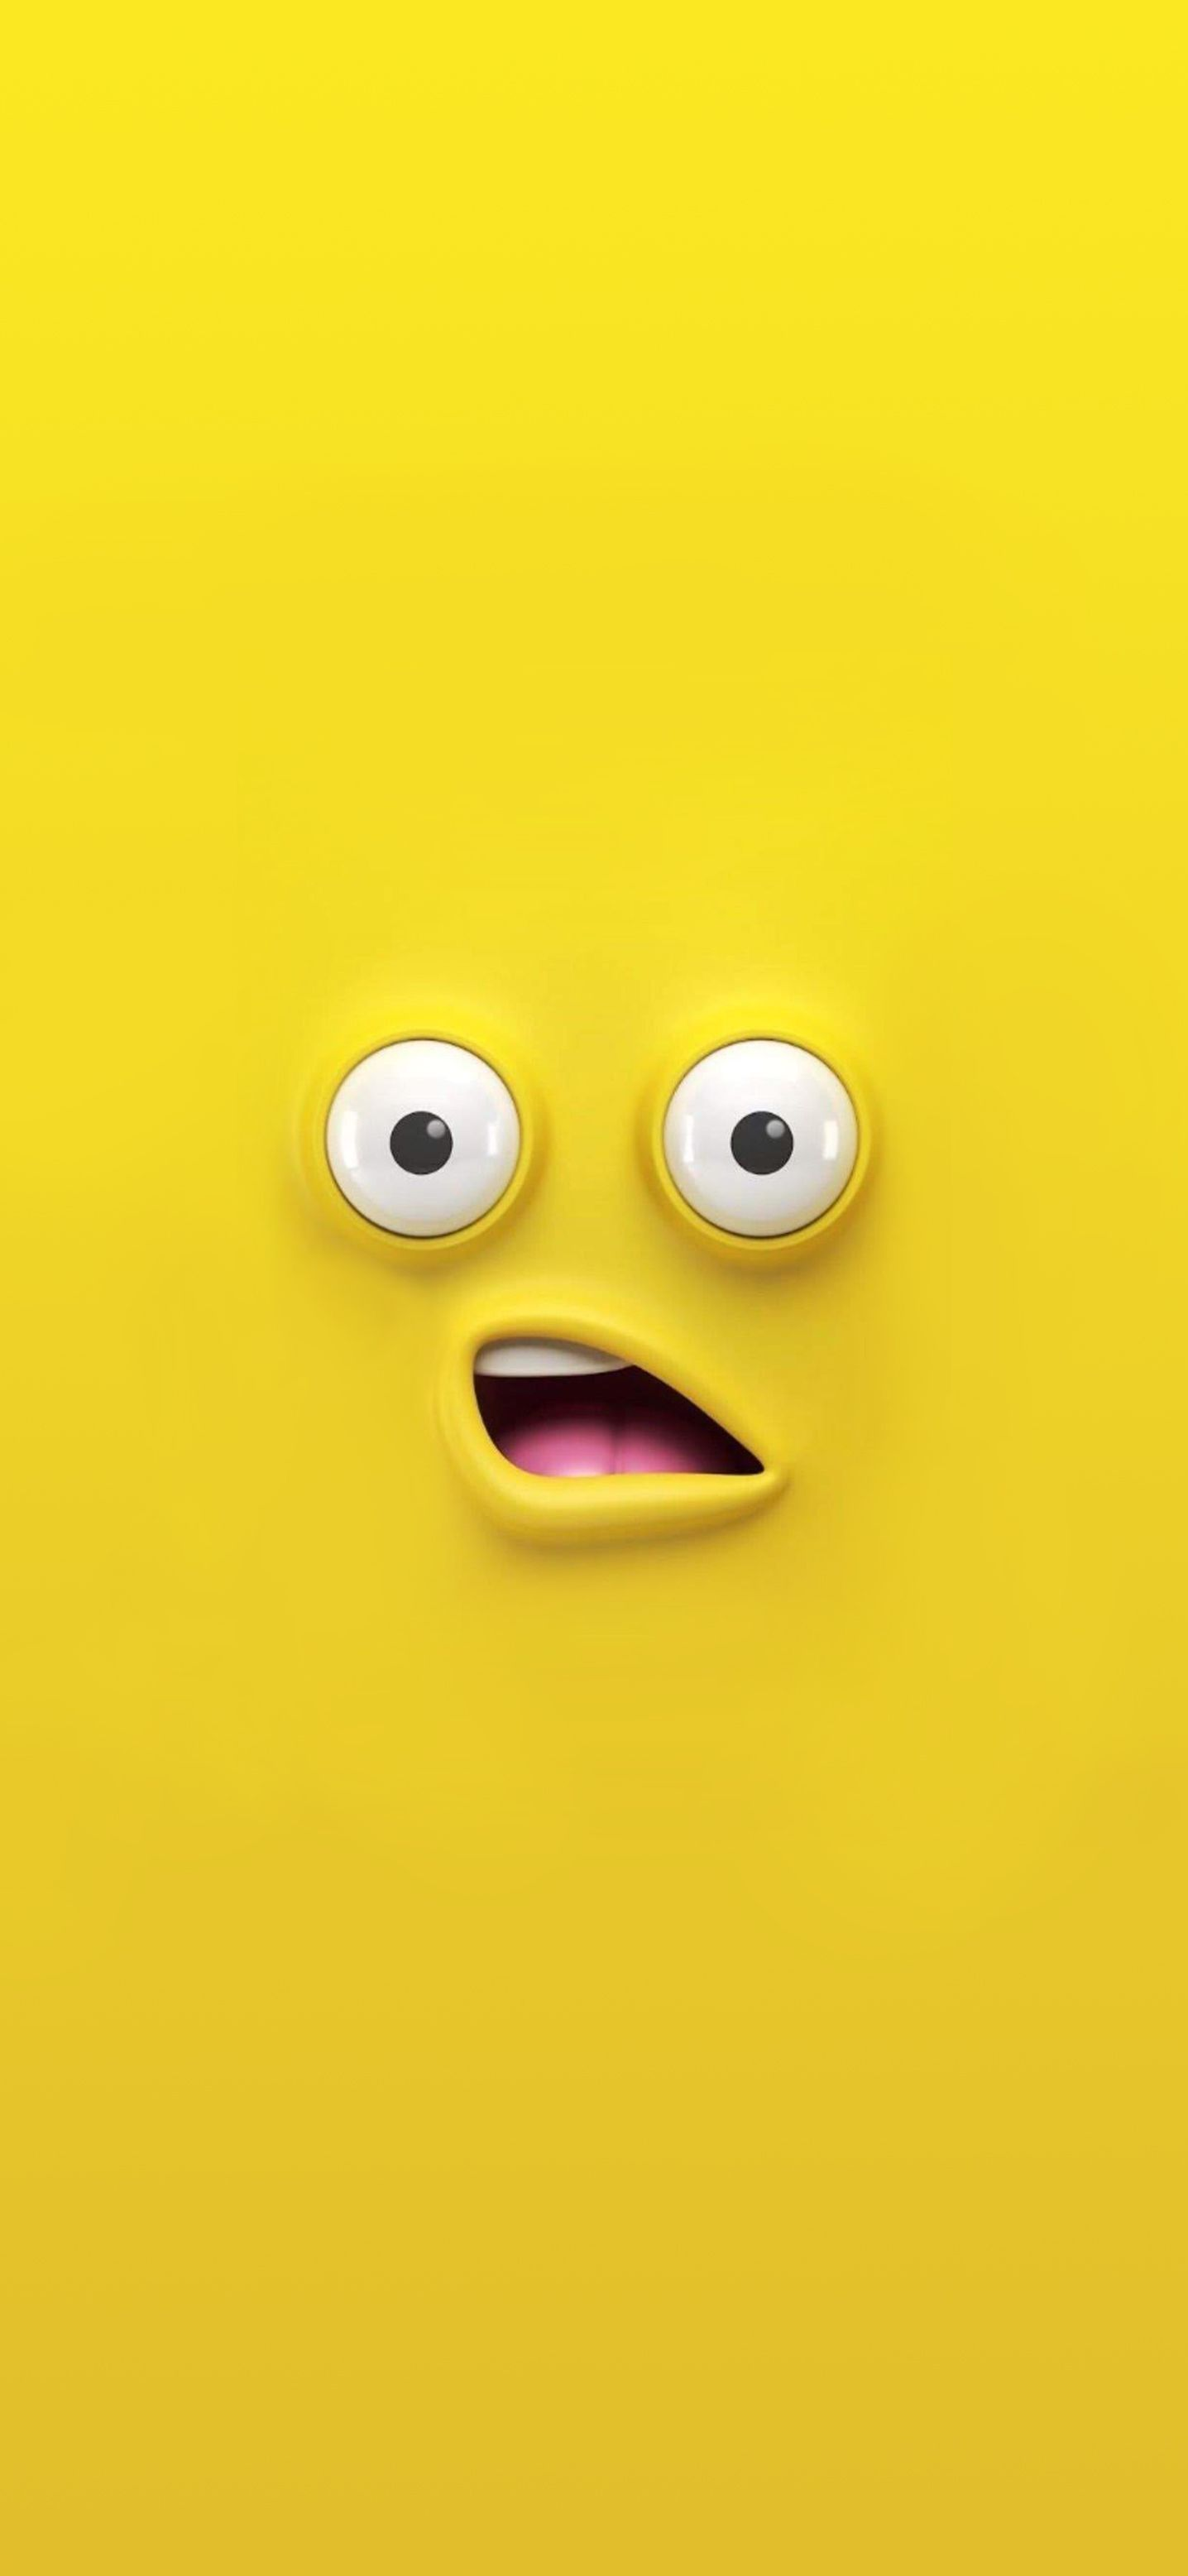 اجمل خلفيات الايفون بجودة Hd Iphone Wallpaper Iphone Wallpaper Yellow Cartoon Wallpaper Iphone Funny Iphone Wallpaper